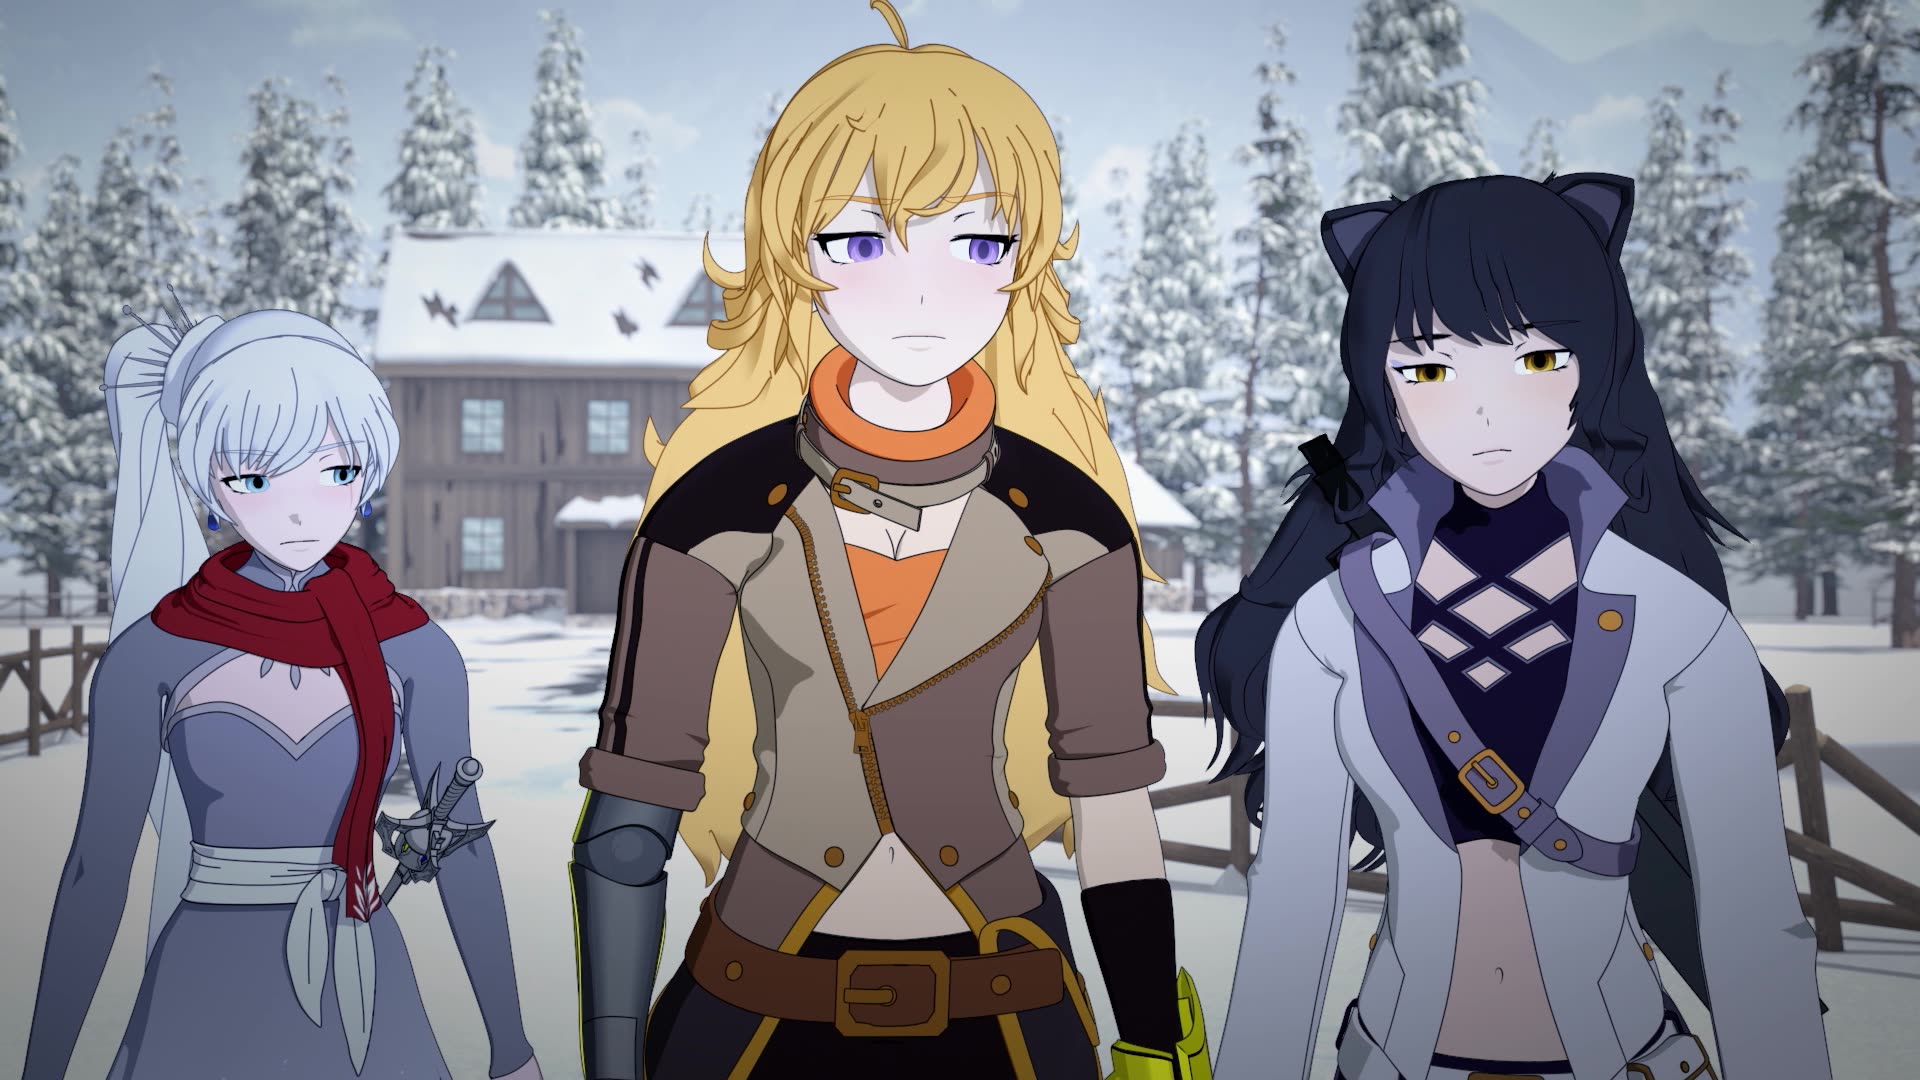 RWBY Volume 6 Episode 6, Alone in the Woods, - Watch on